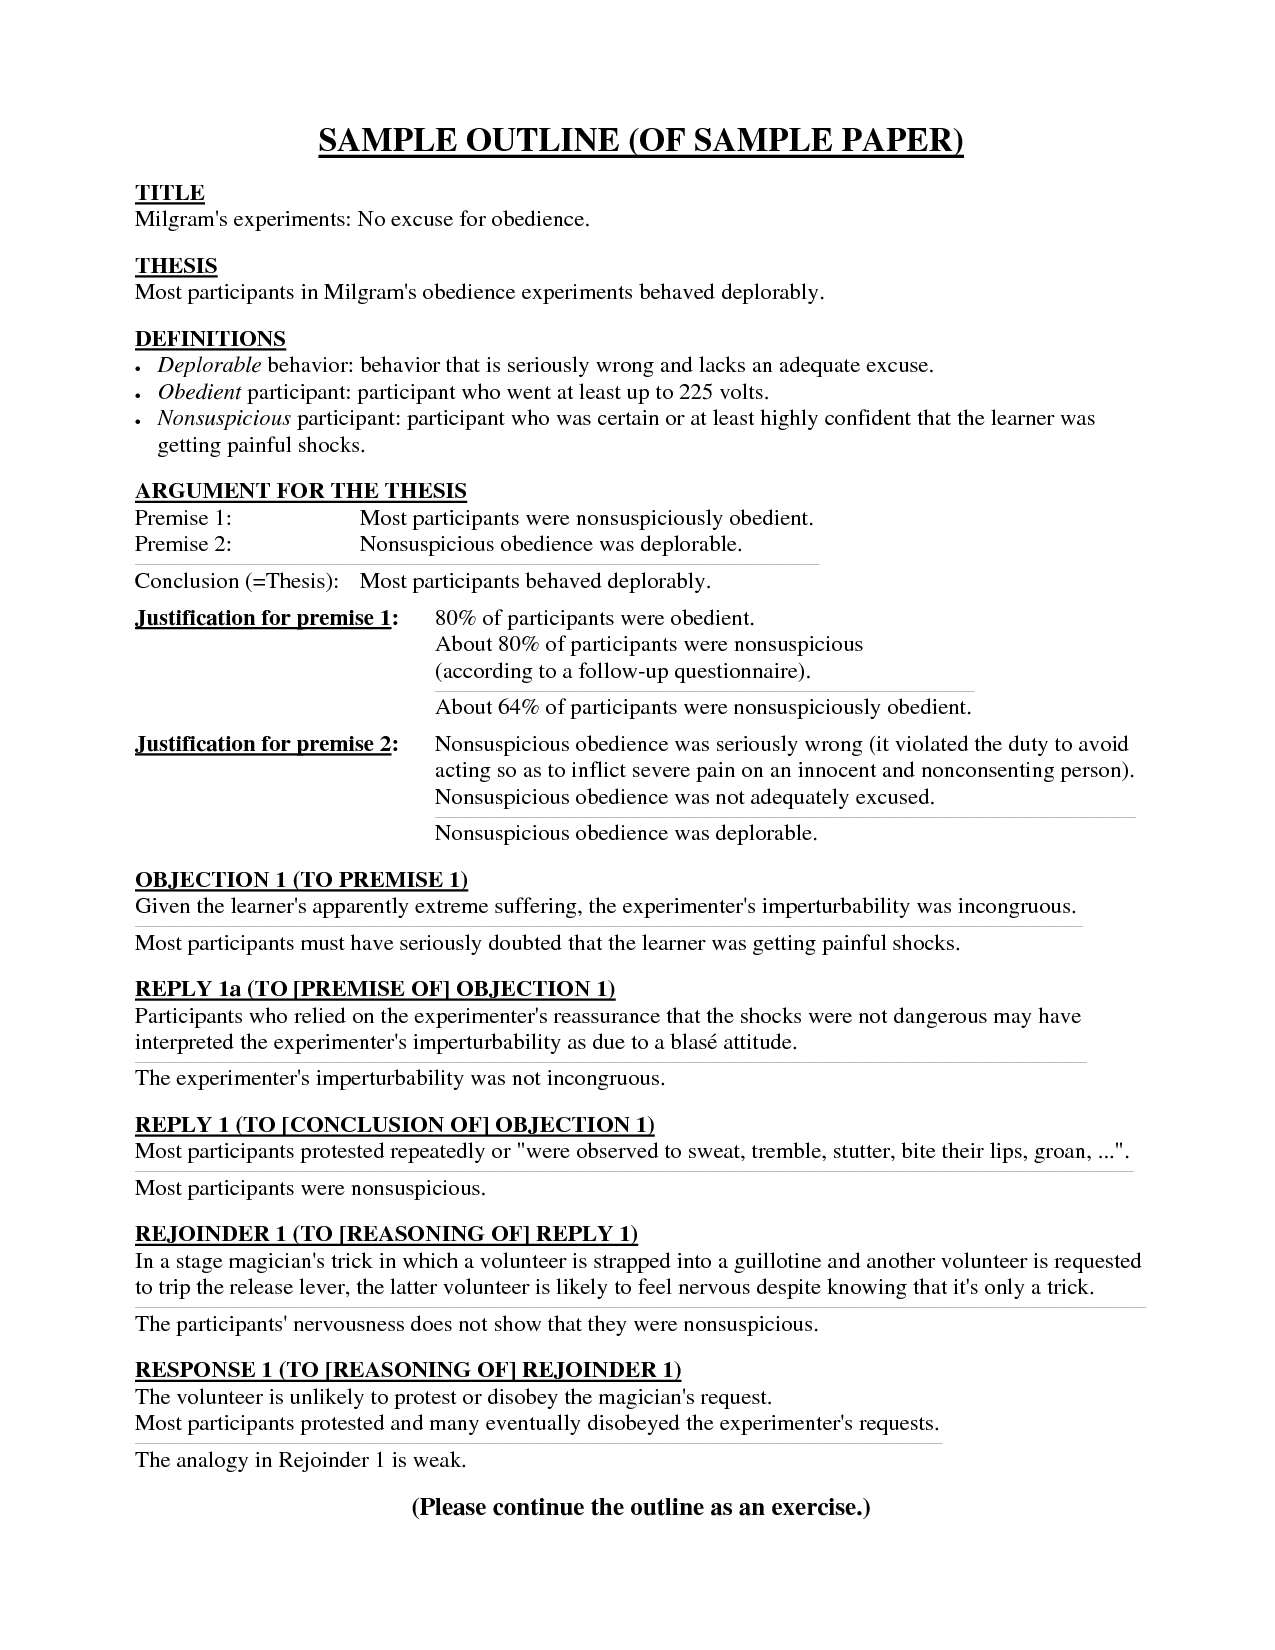 Laboratory operations manager resume